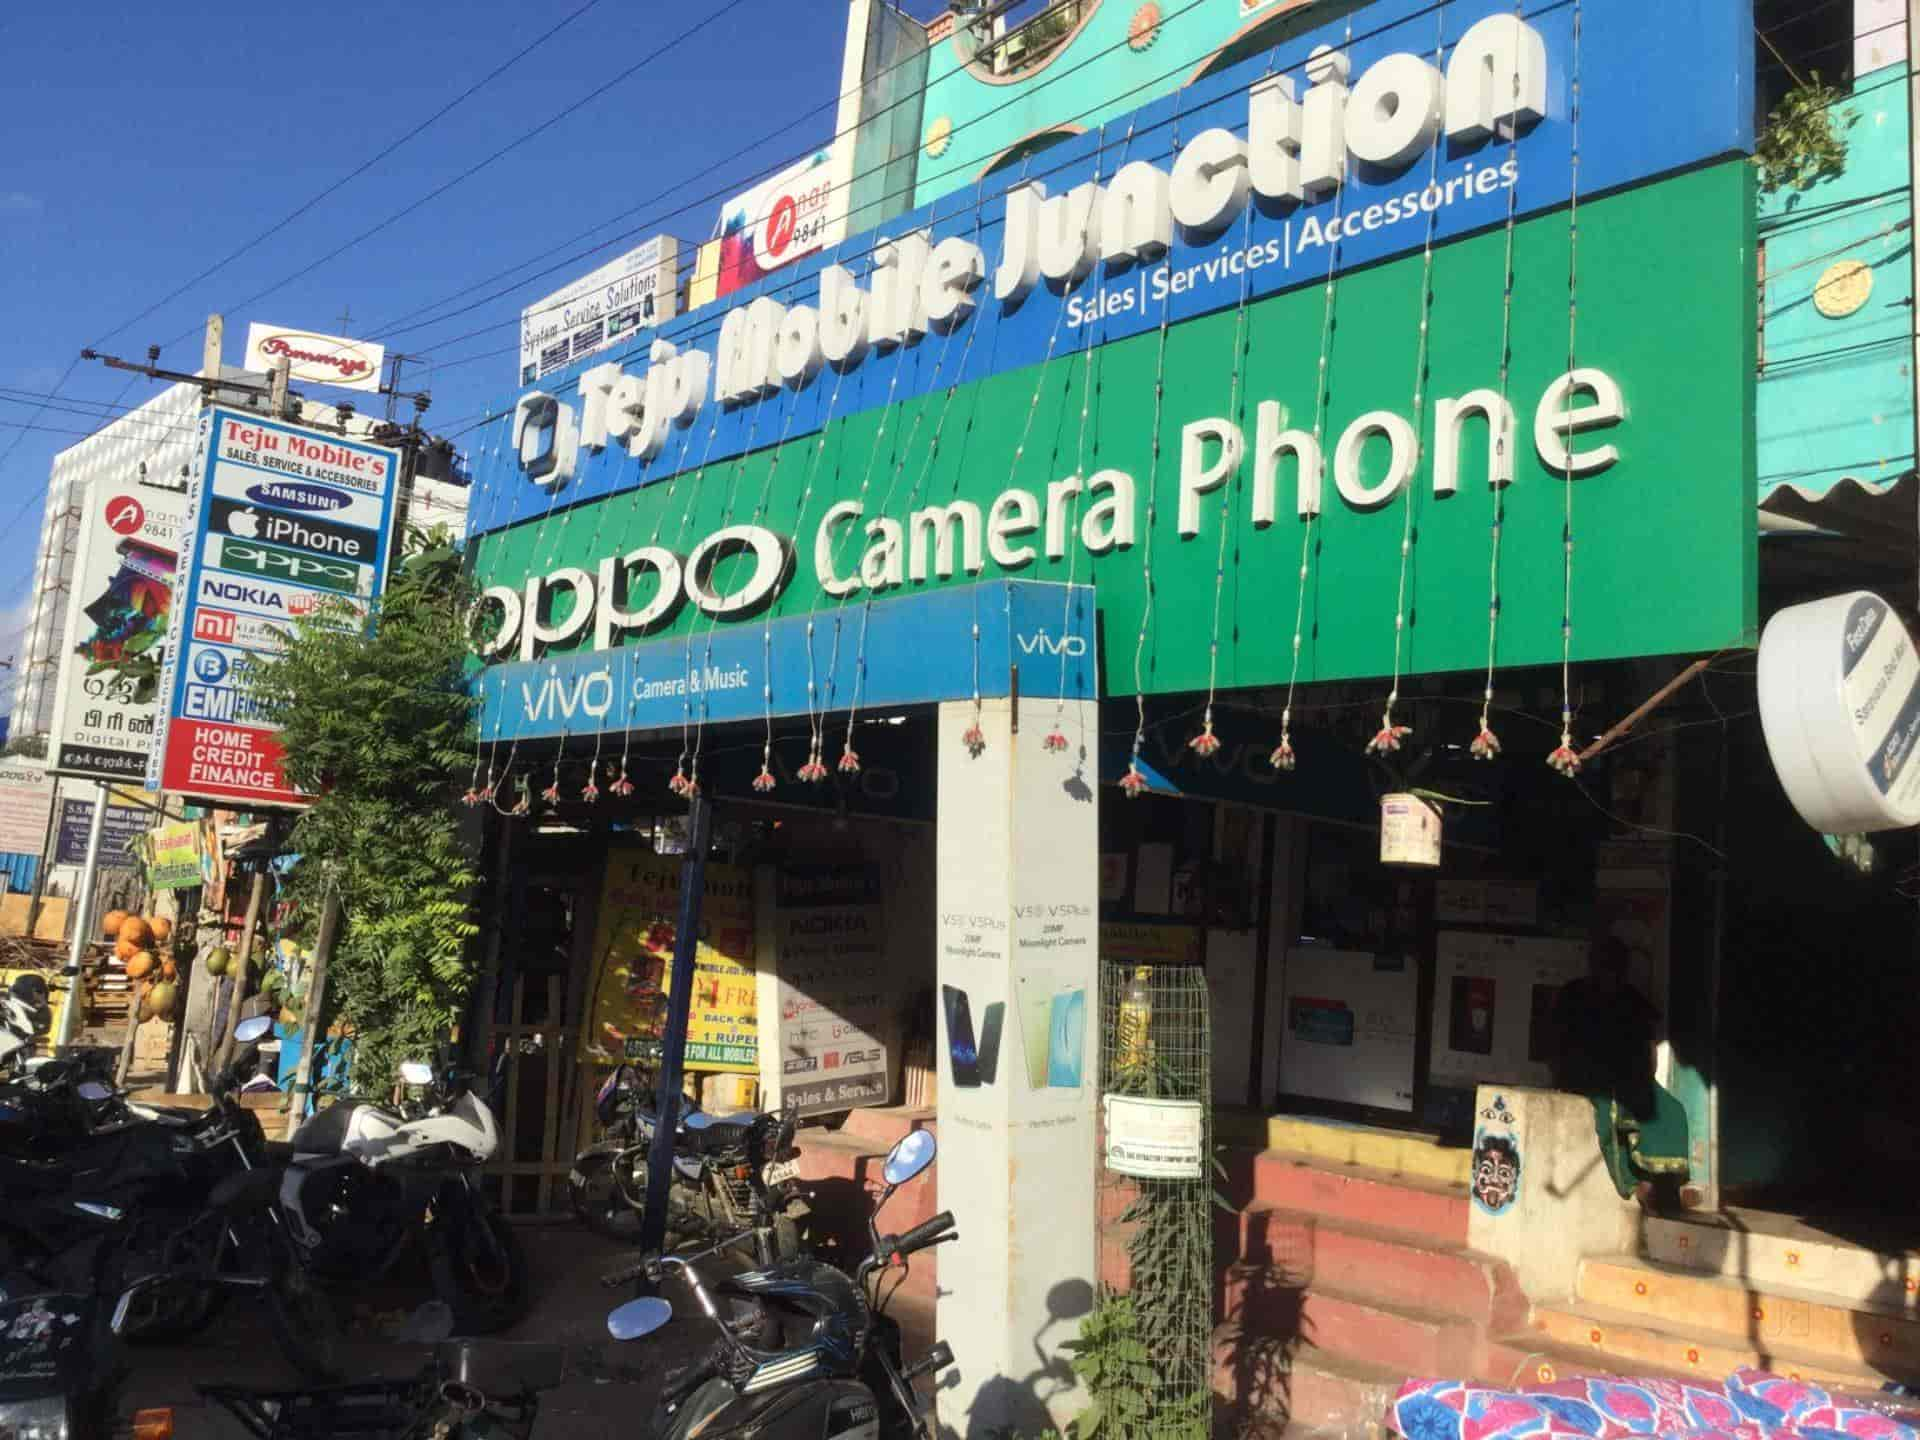 Teju Mobile Junction, Ambattur - Mobile Phone Dealers in